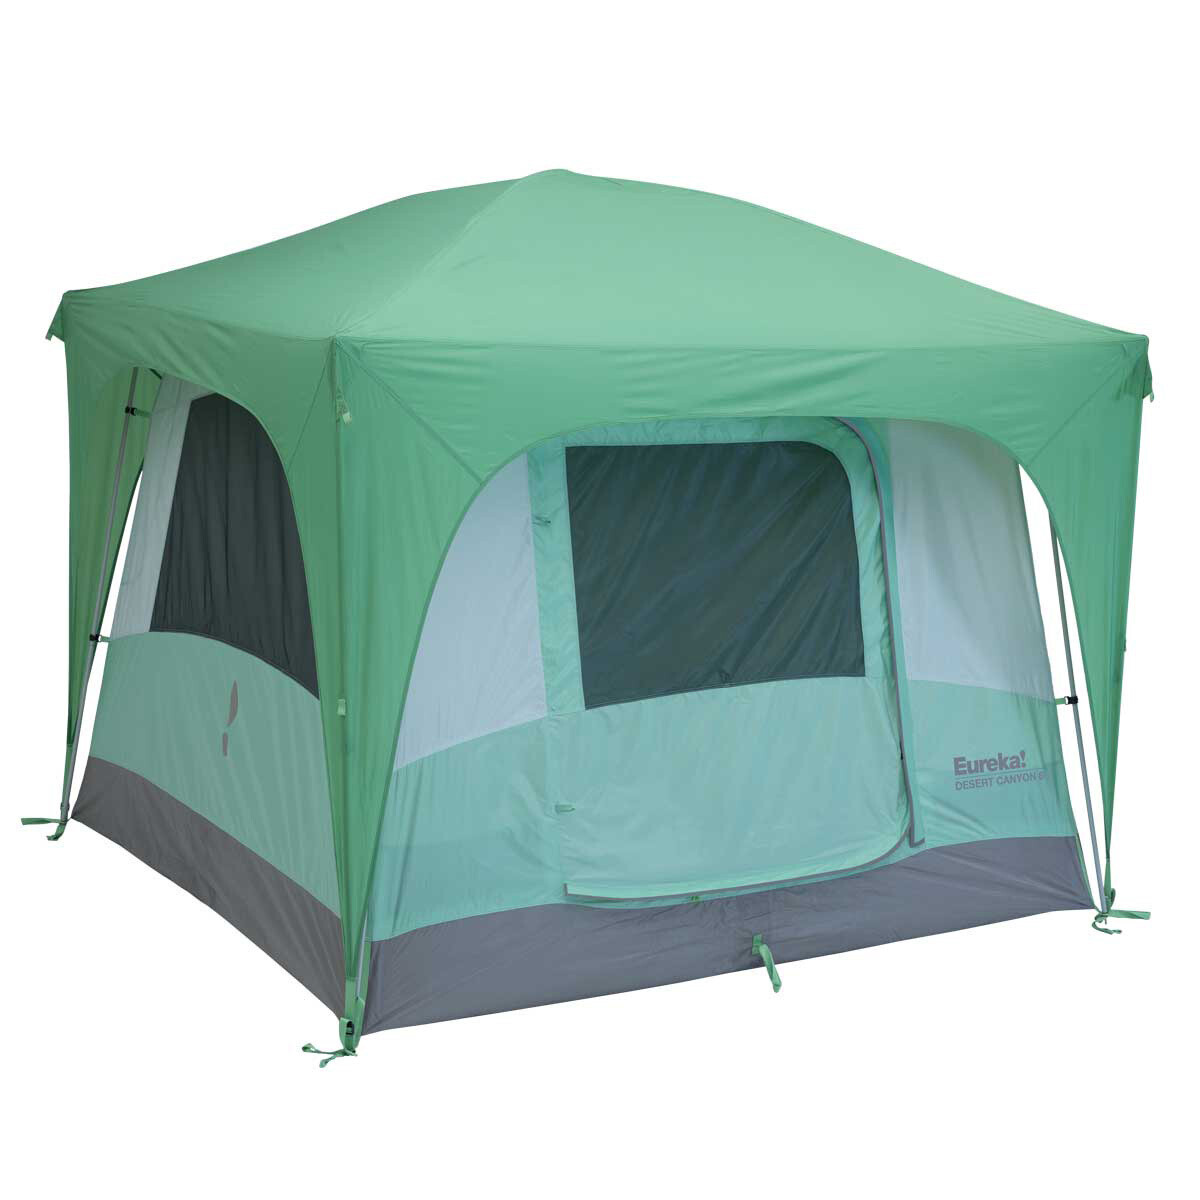 Eureka Desert Canyon 6 Person Tent